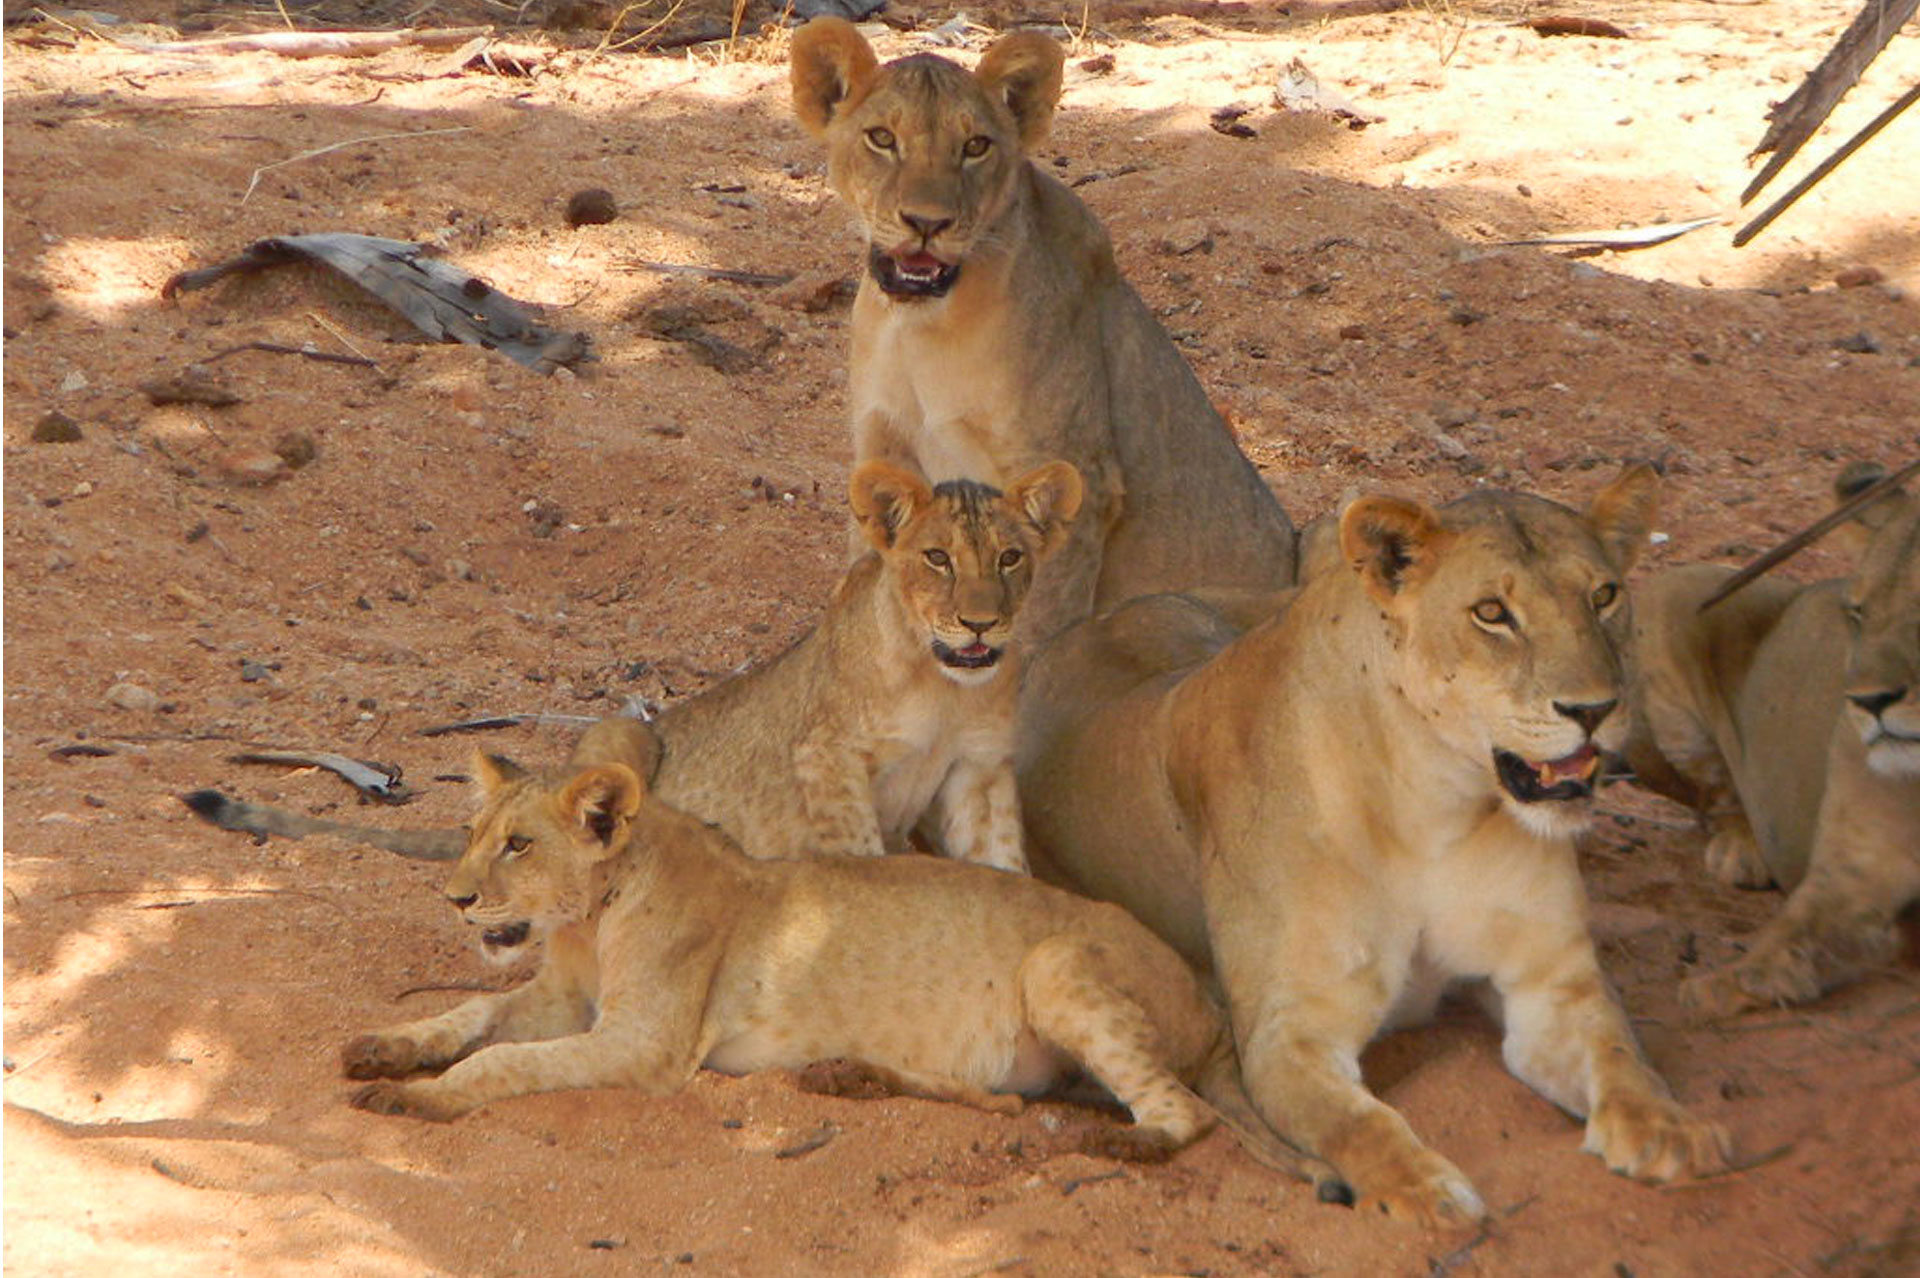 Diani_travel_center_Tours_and_Safaris_Diani_tours_and_Safaris_1_day_Tsavo_Eastjpg